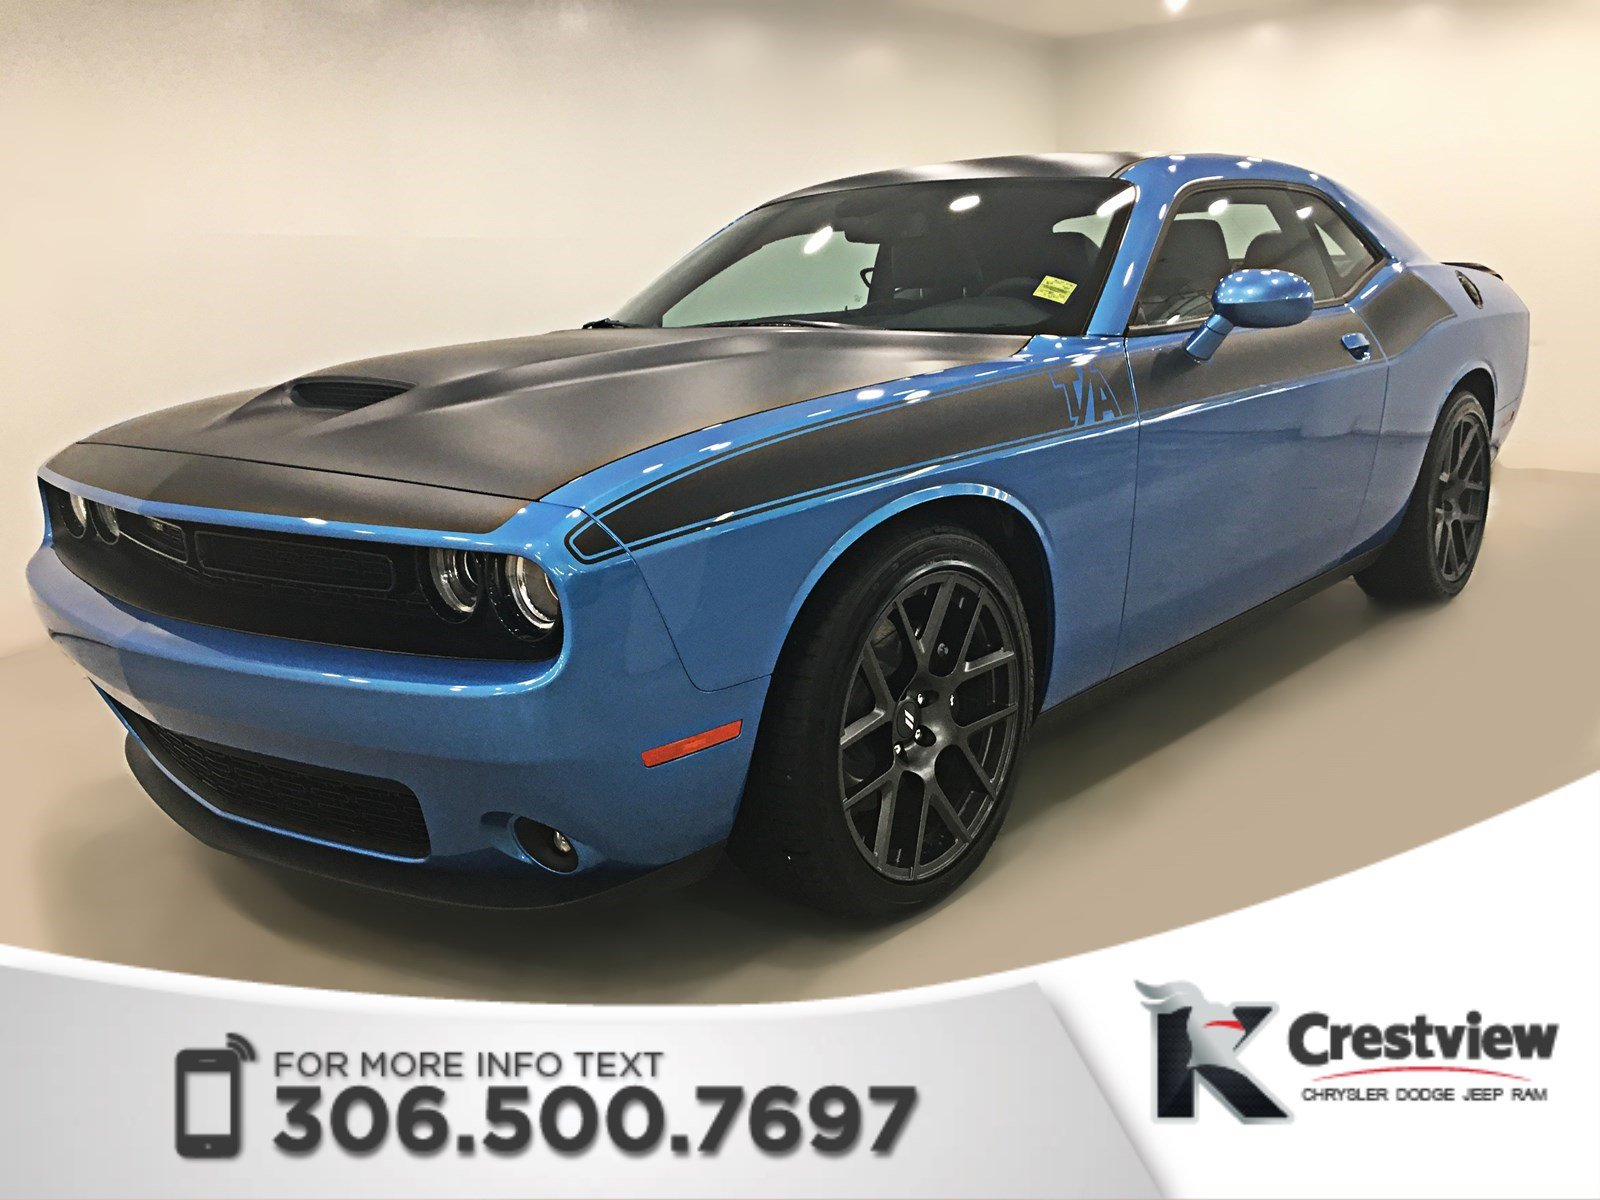 Cars for Sale Near Me with Sunroof Lovely New 2018 Dodge Challenger T A 5 7l Hemi Sunroof